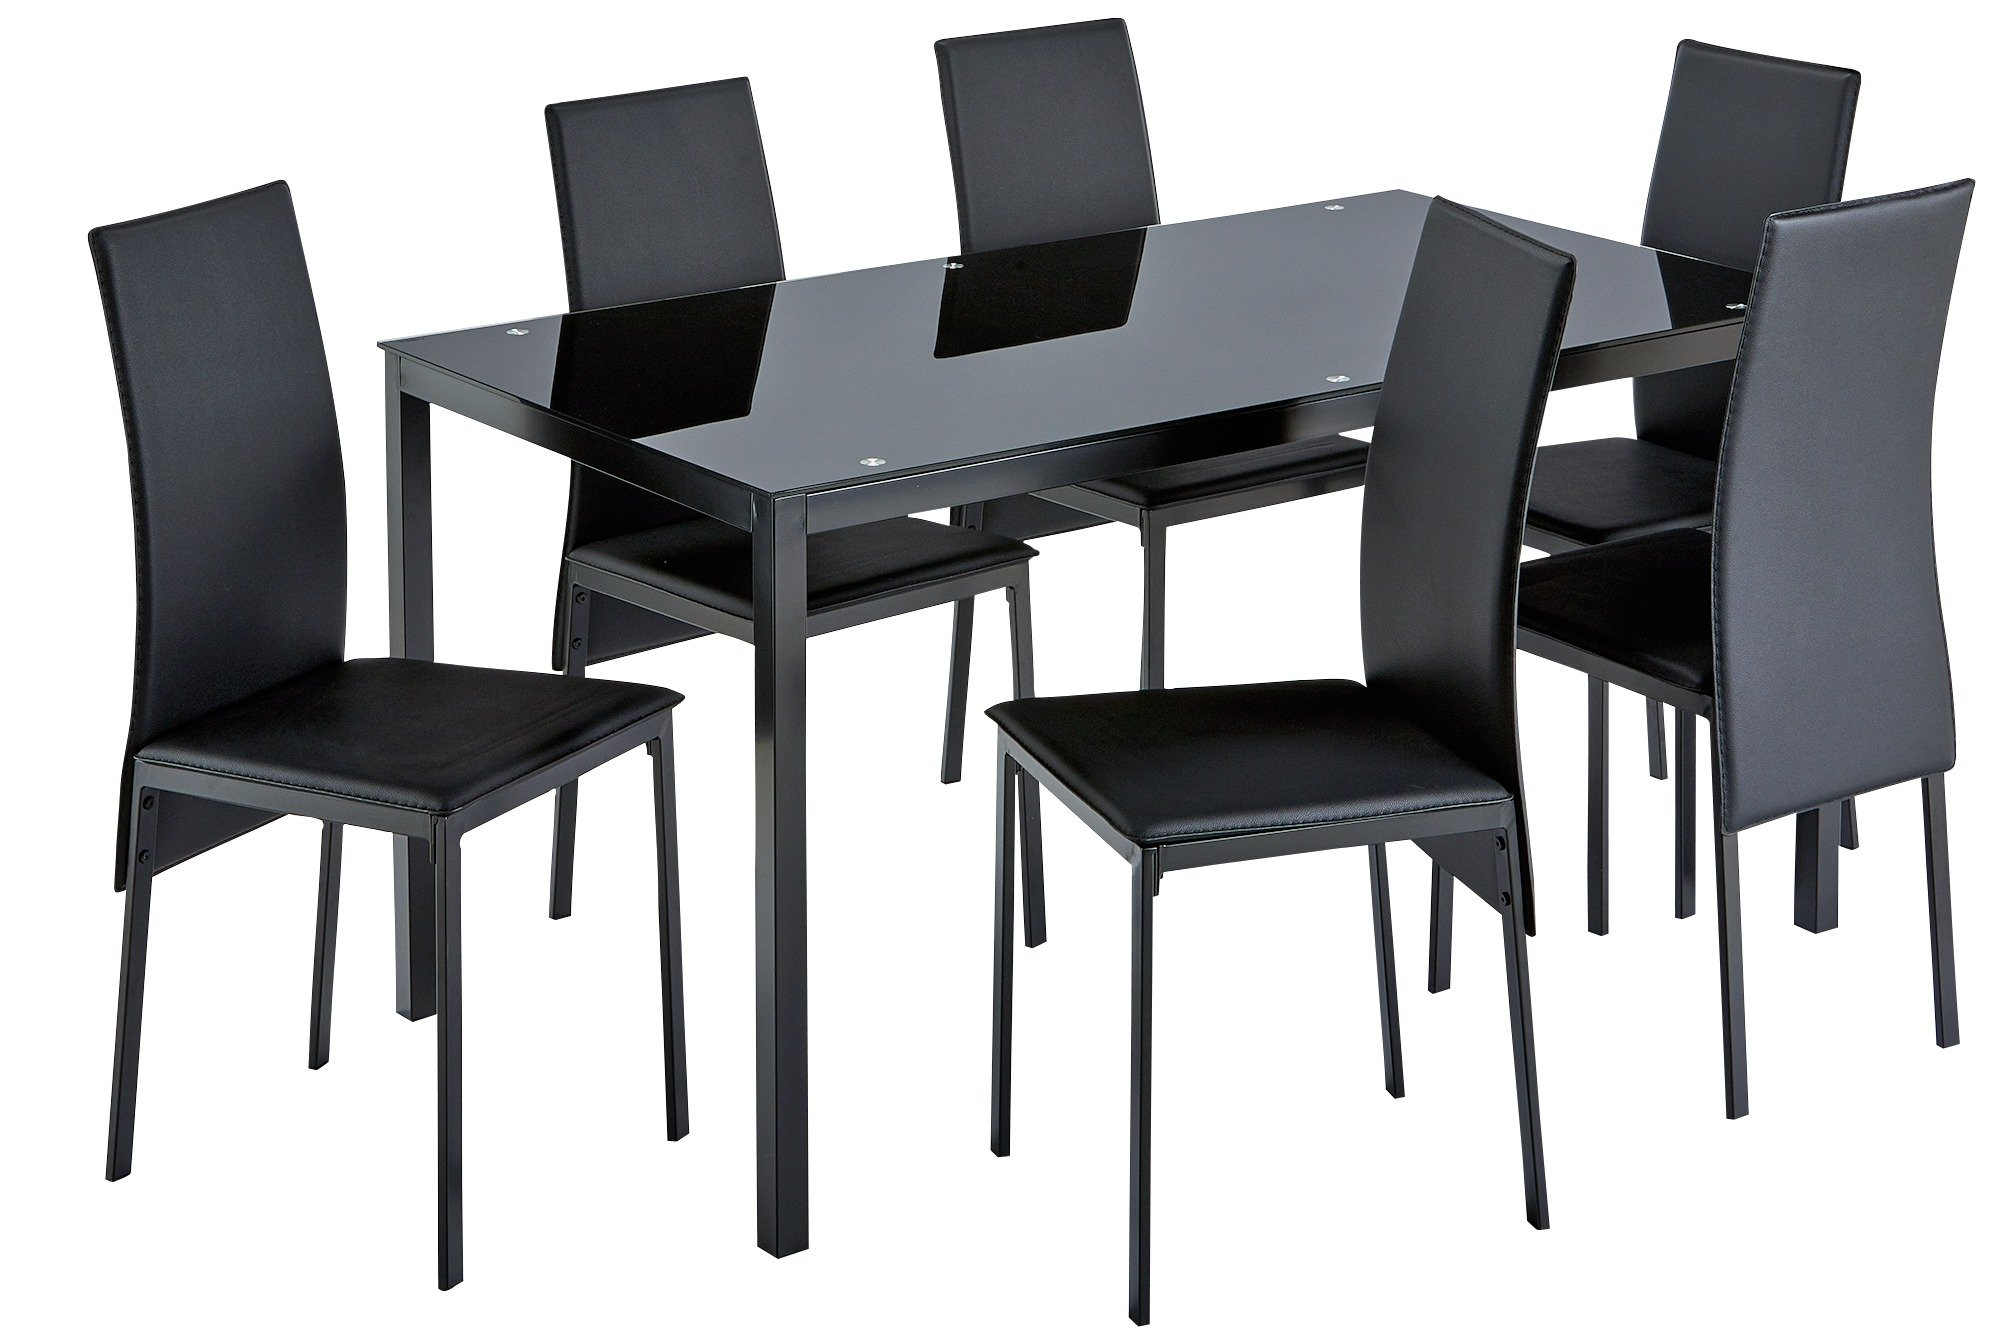 6 chair dining set swing for 1 year old buy argos home lido glass table and chairs black